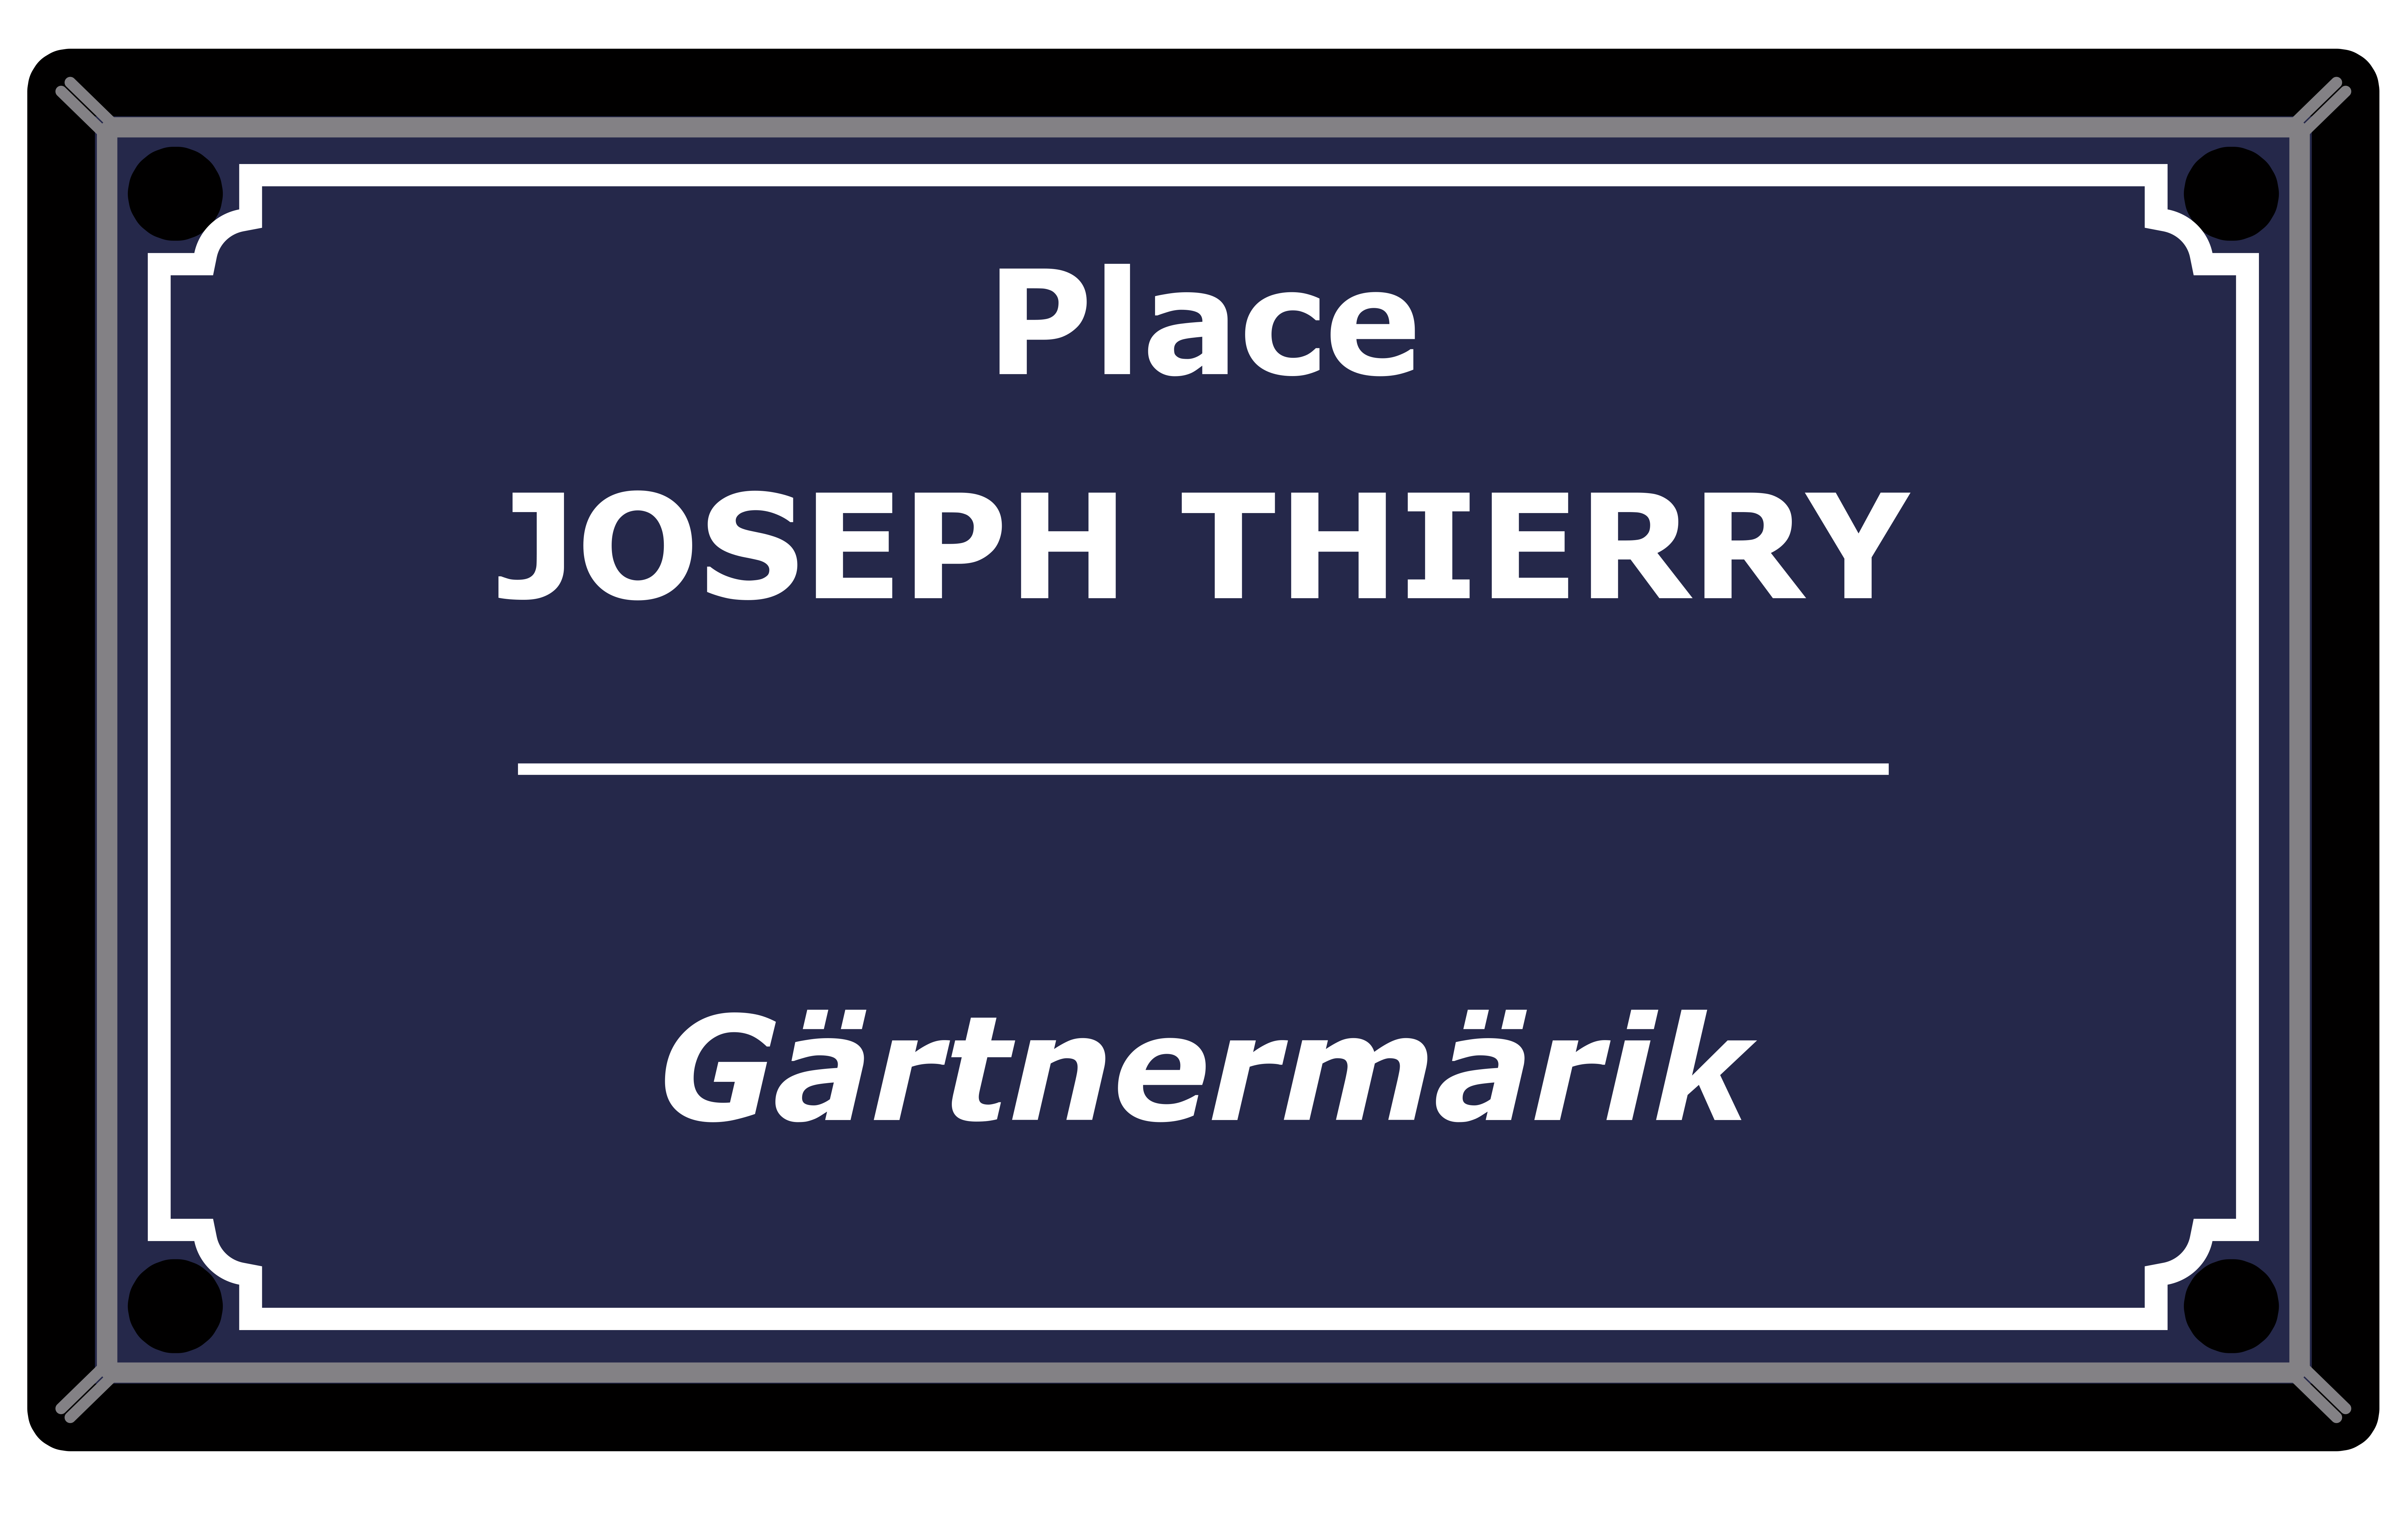 Place Joseph Thierry